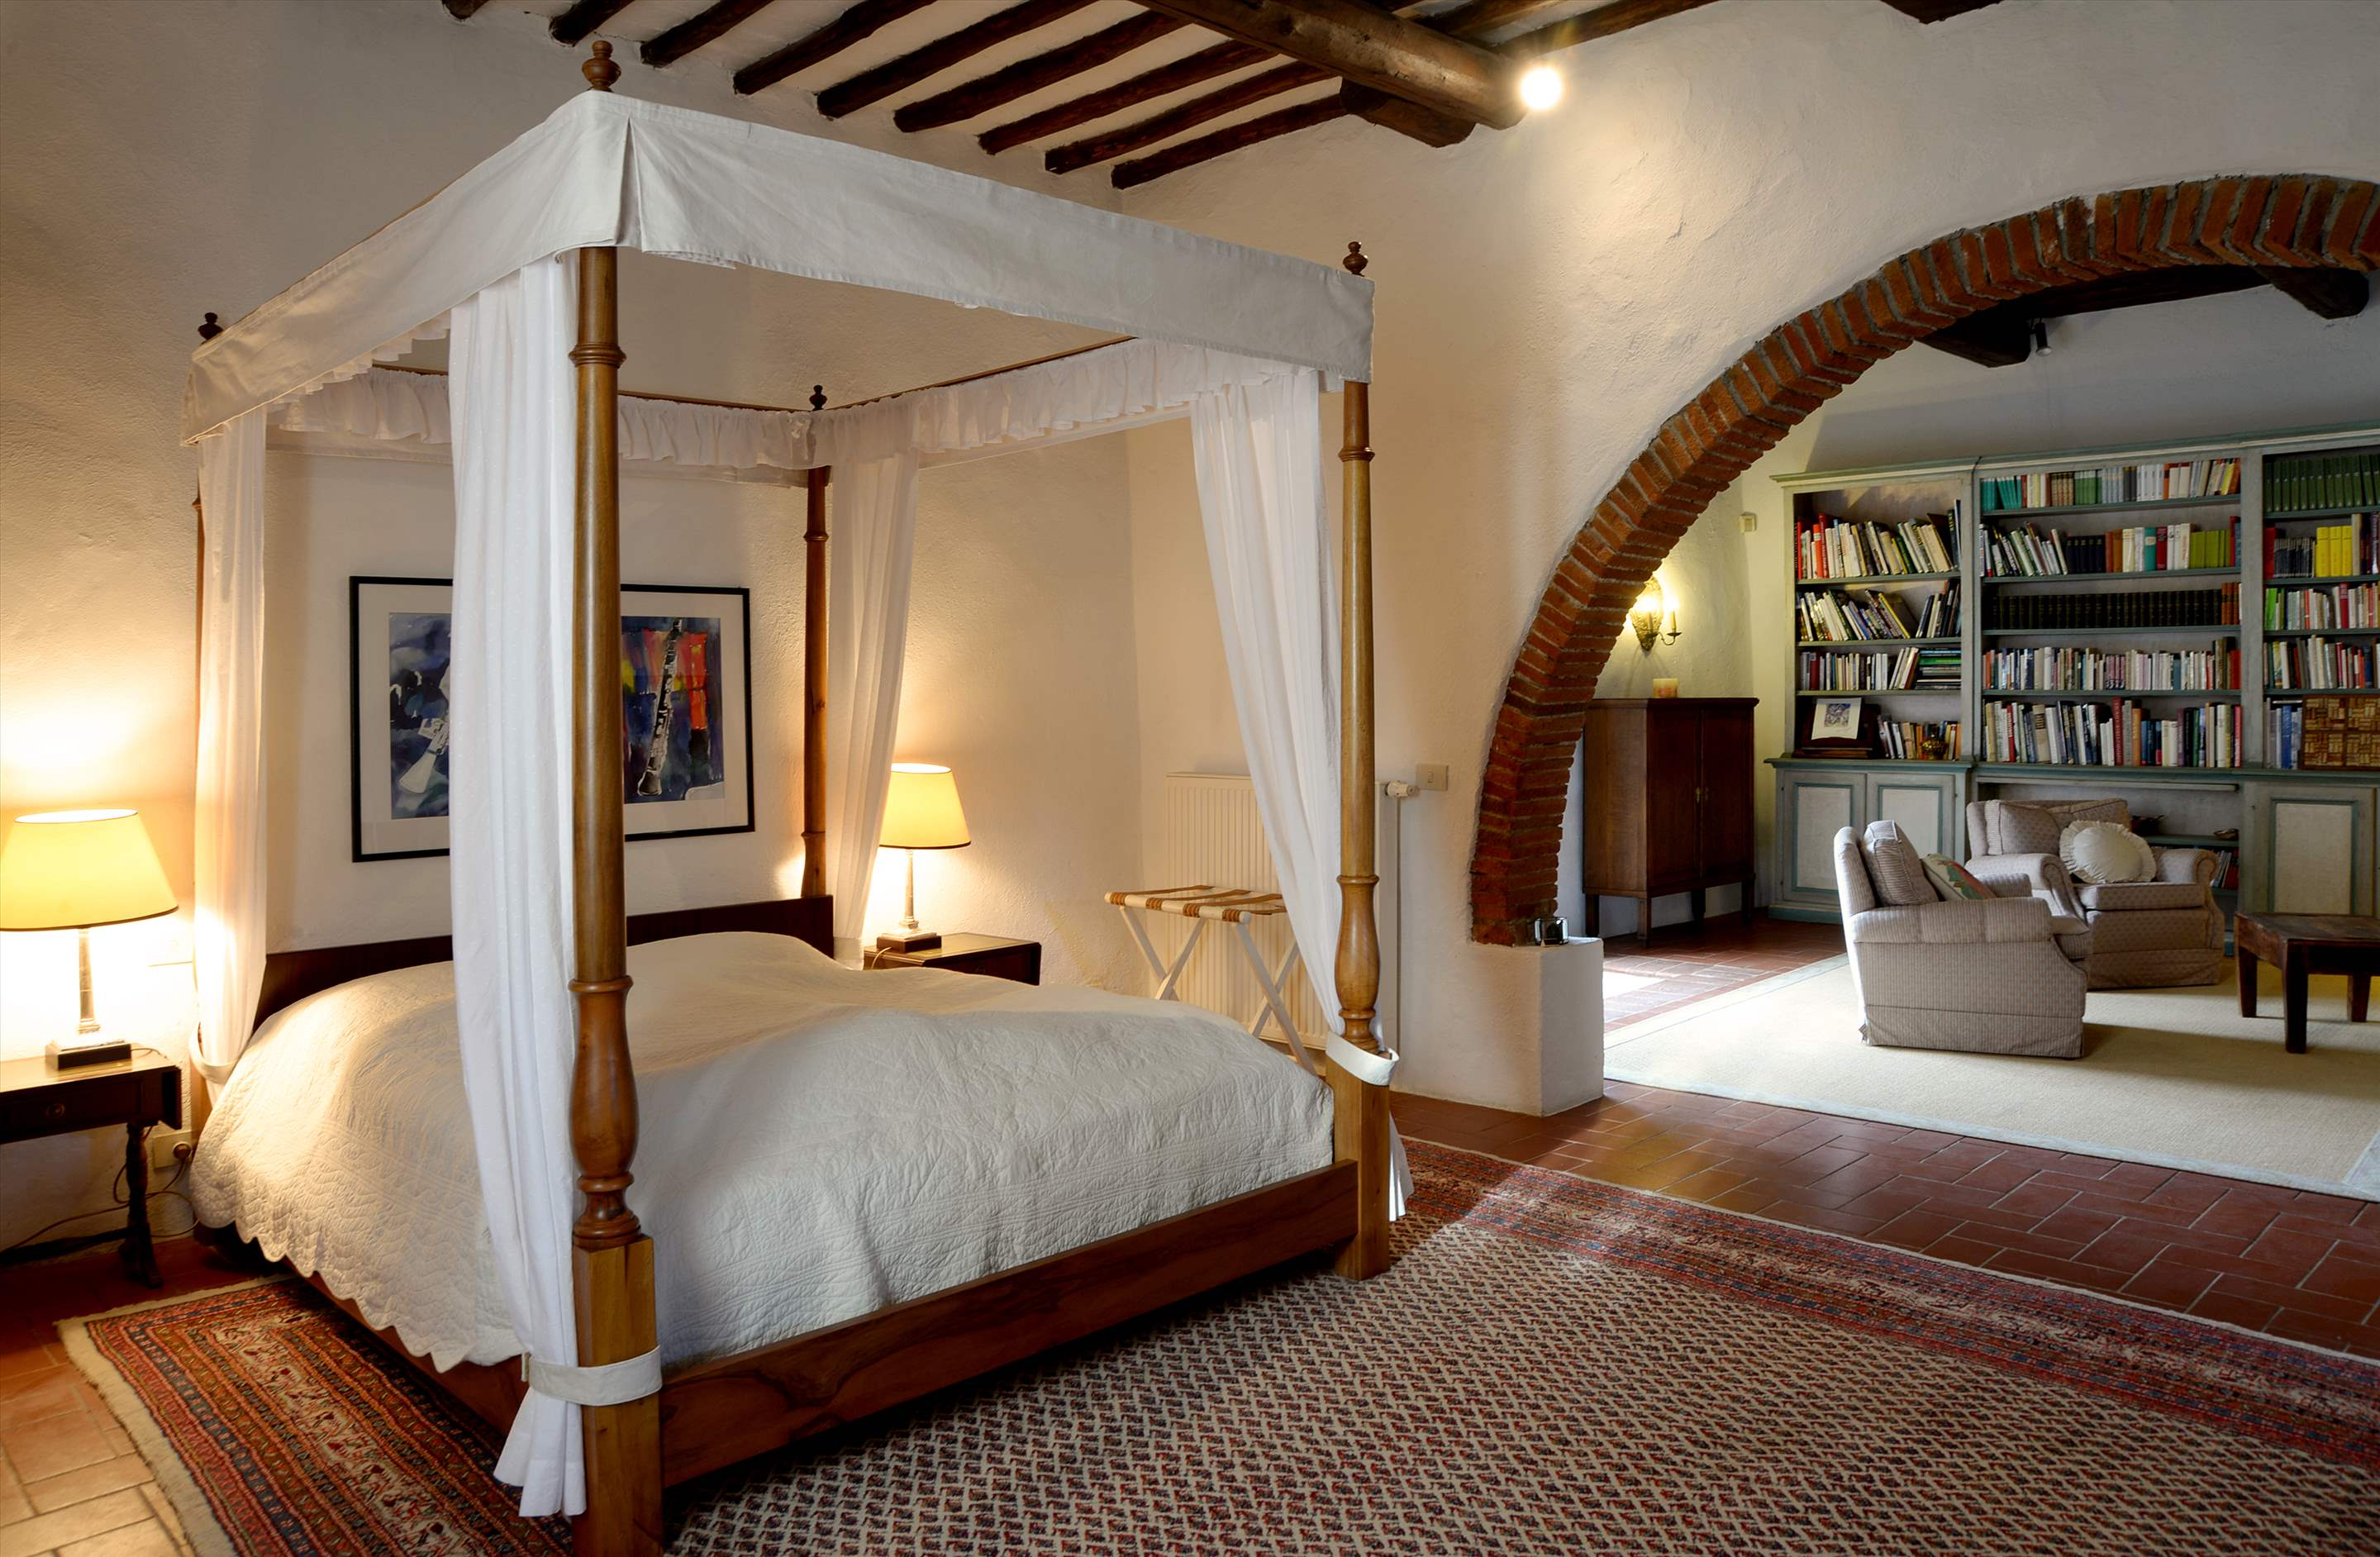 Villa Campana, 5 bedroom villa in Chianti & Countryside, Tuscany Photo #12